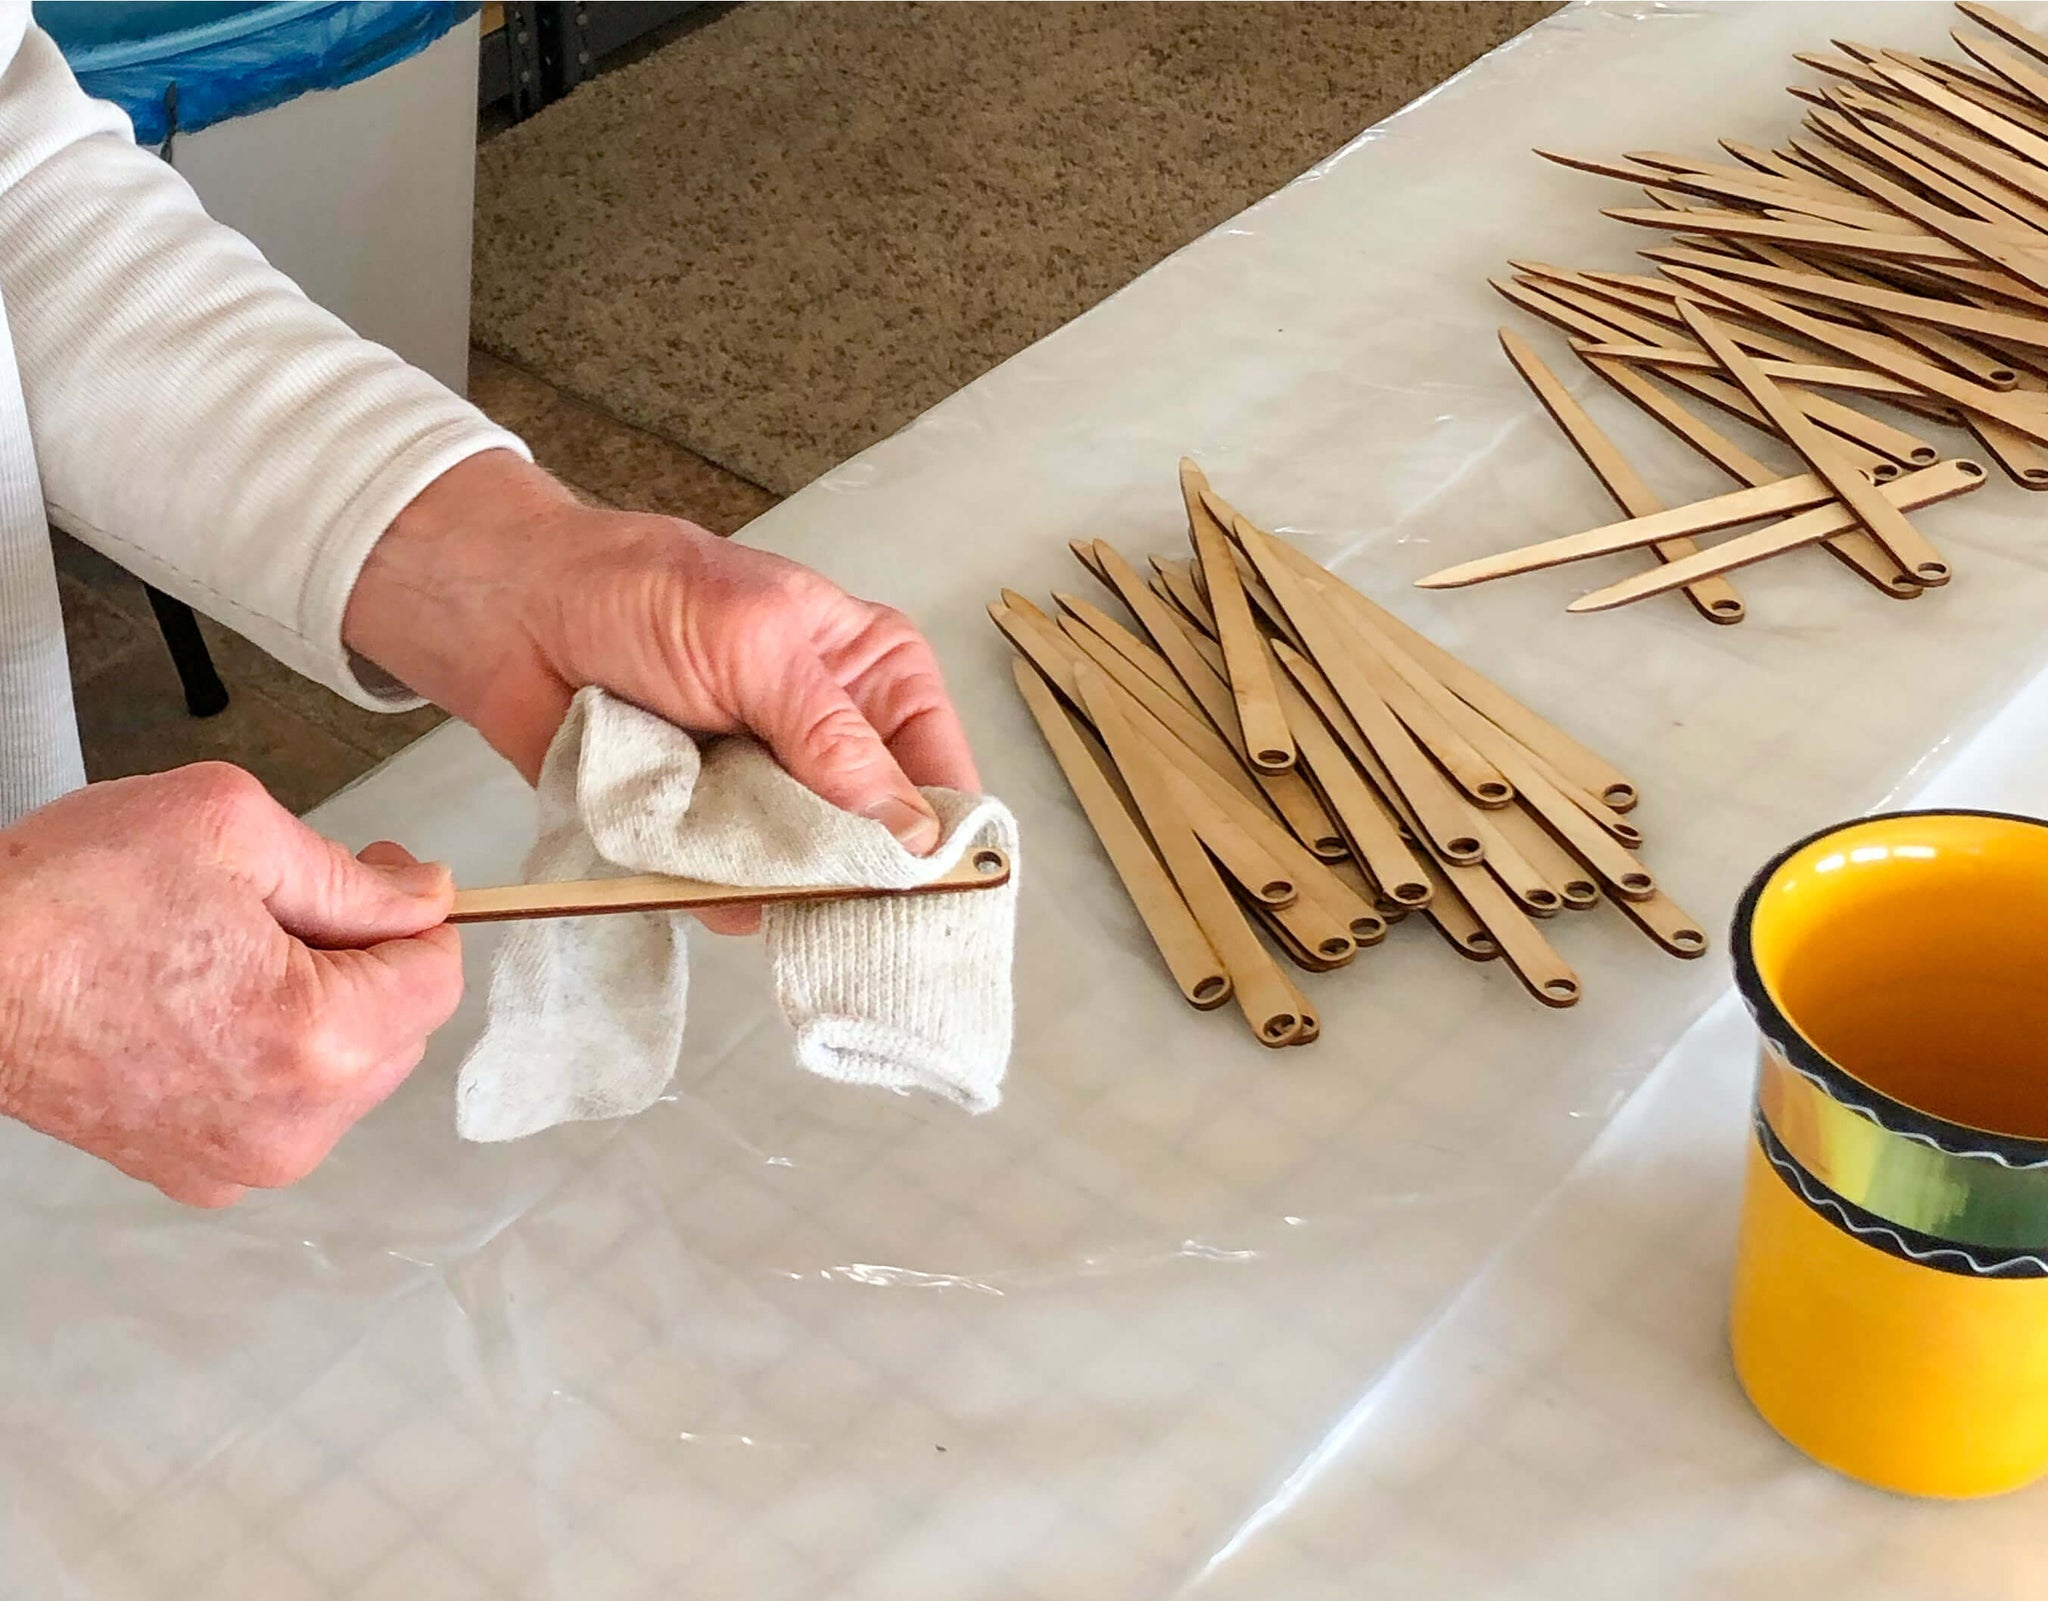 waxing the wooden needles